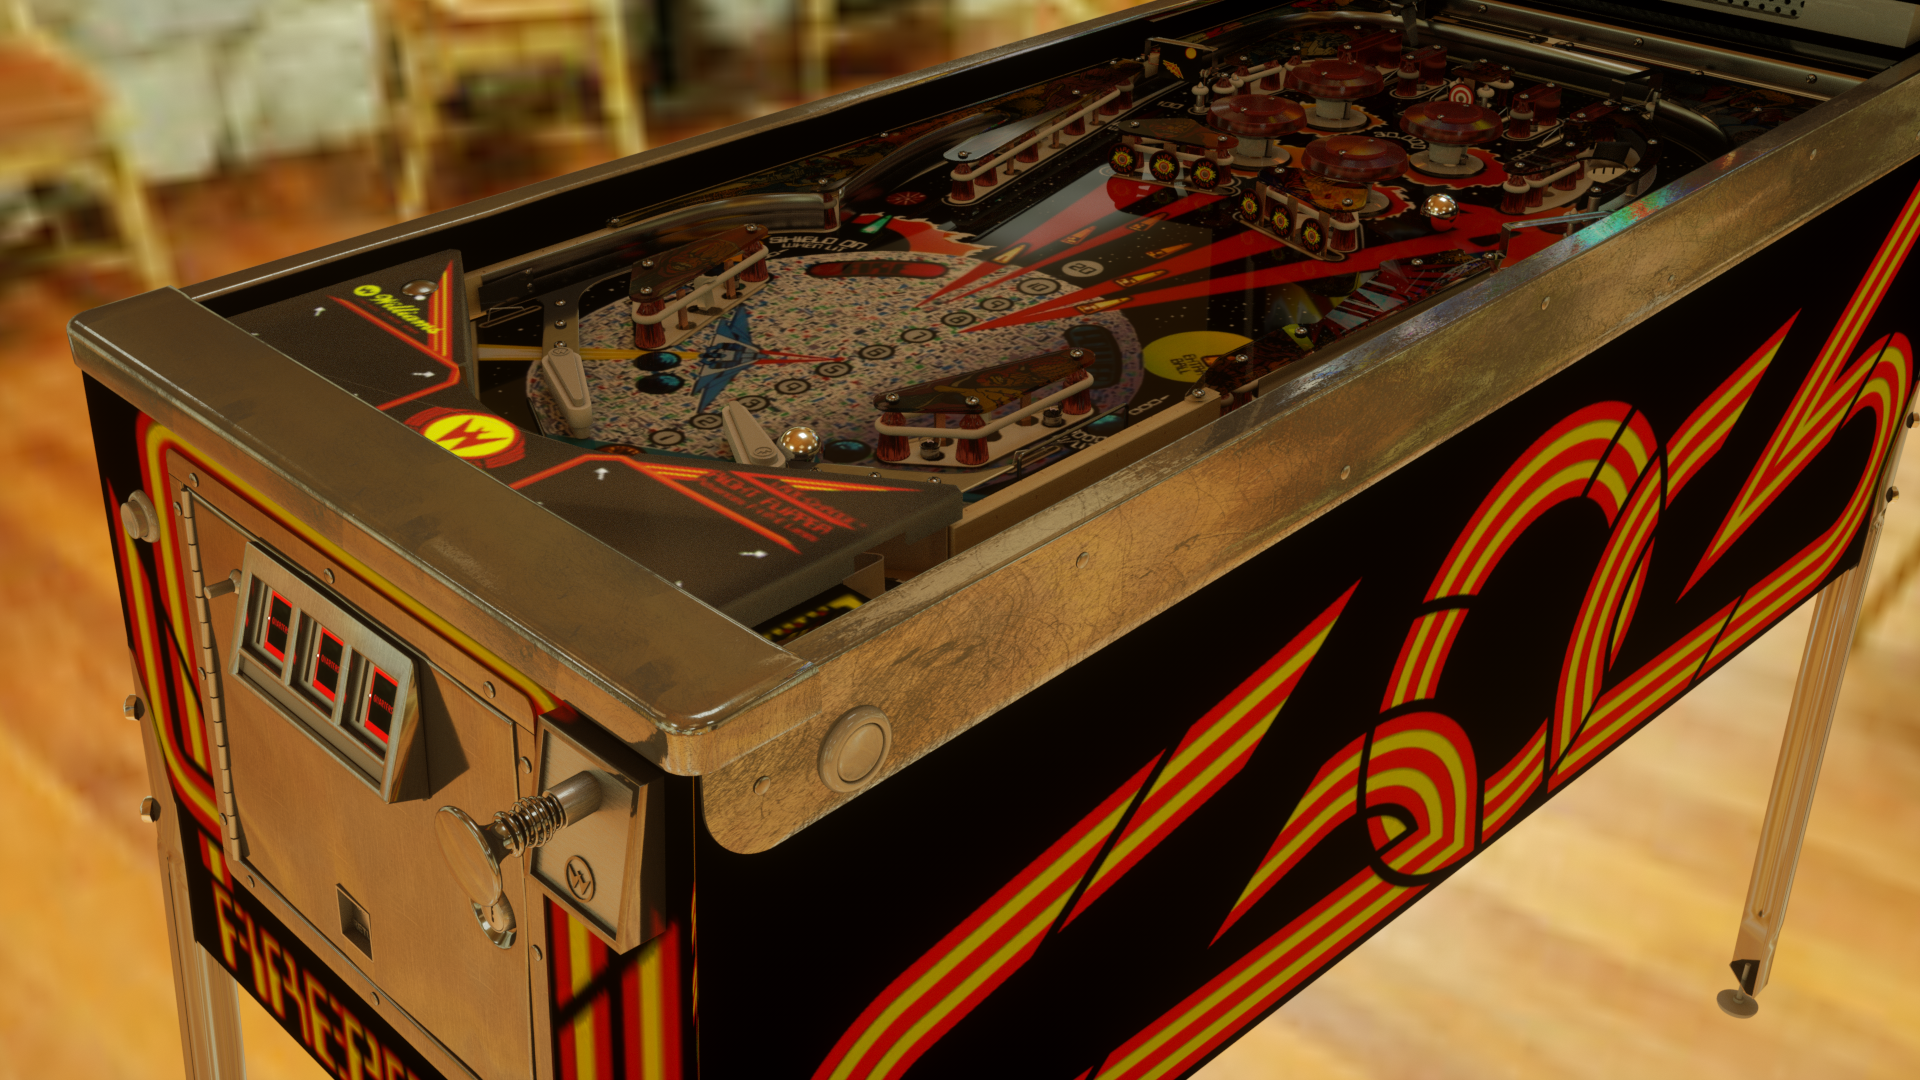 Pinball machine shading: metal